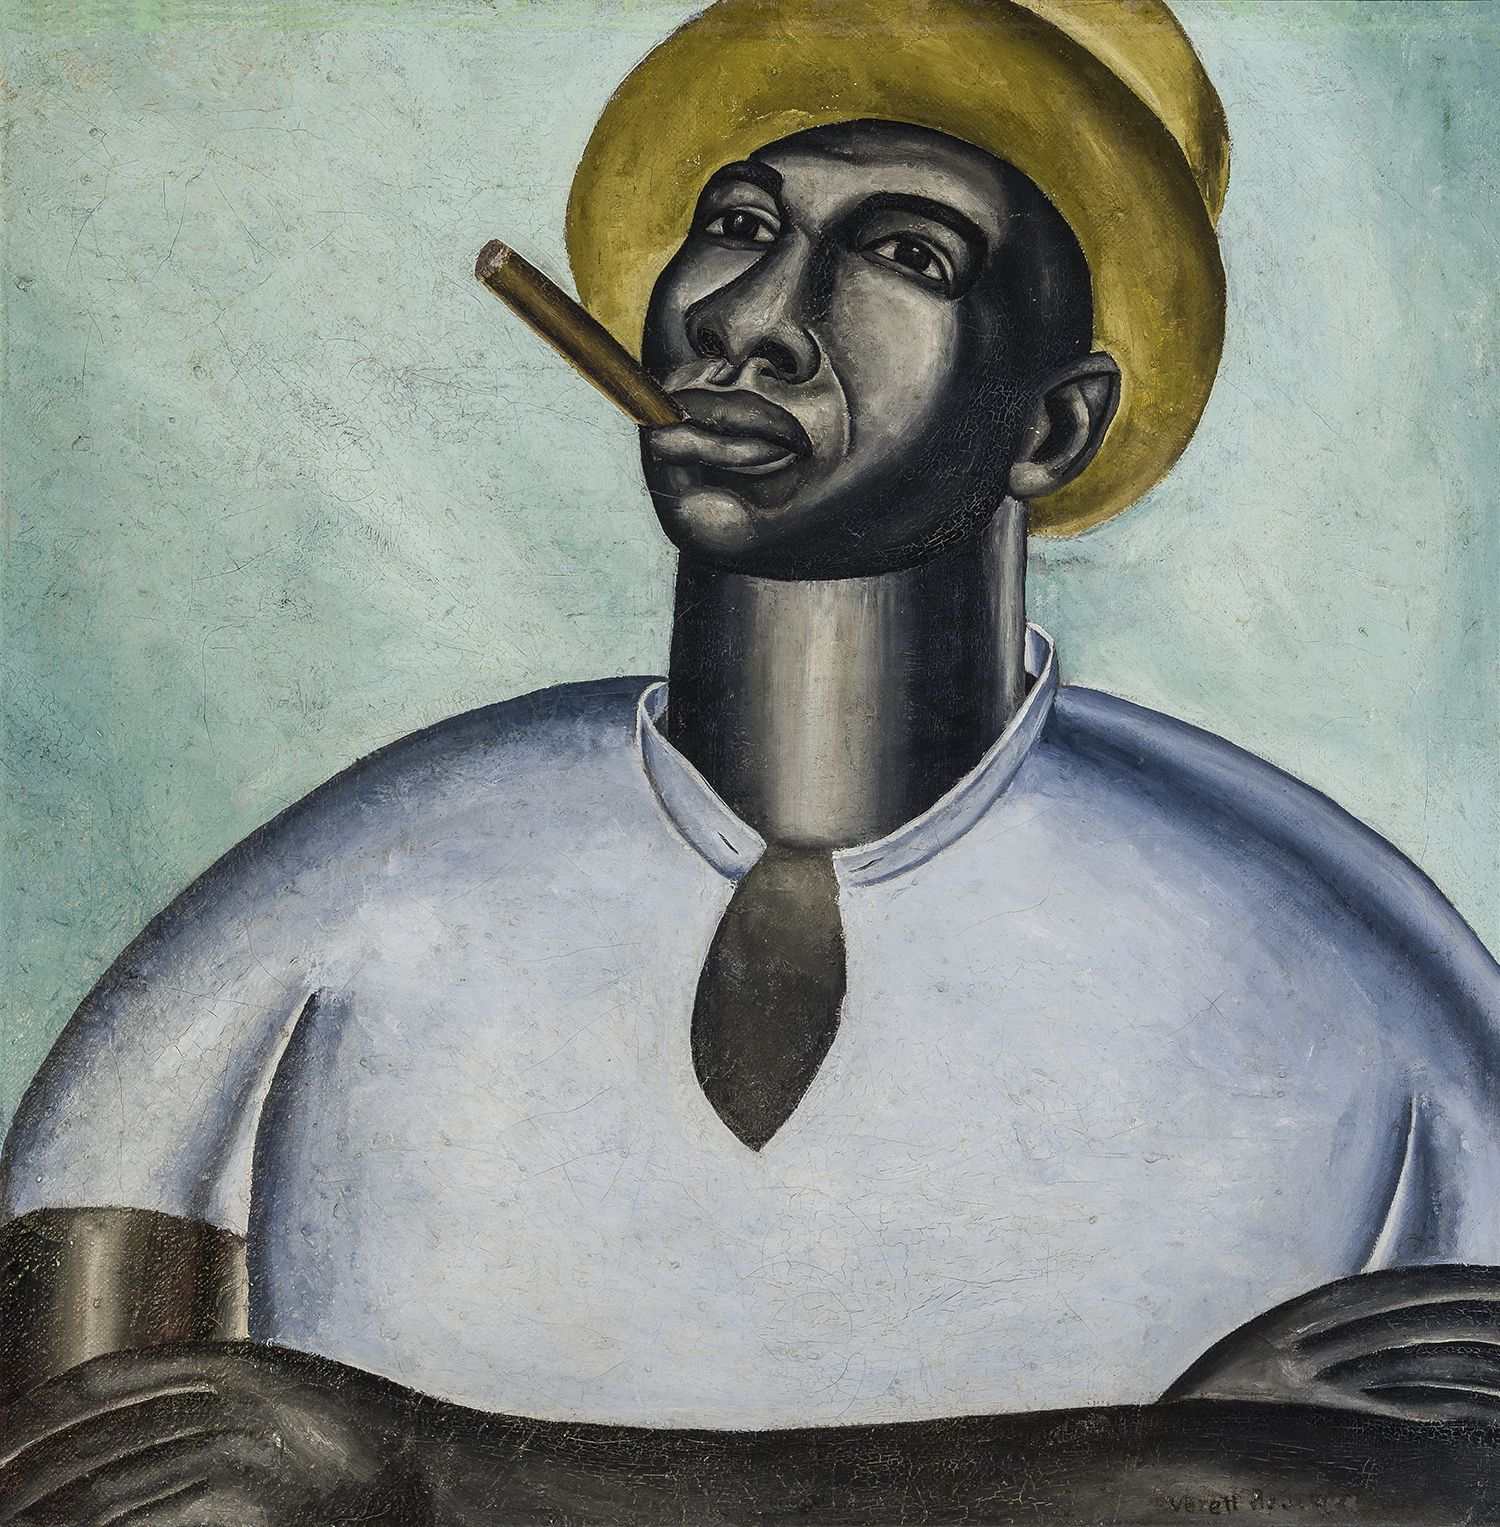 Big Jim, c. 1927, Oil on canvas, 23 3/4 x 23 3/4 in.